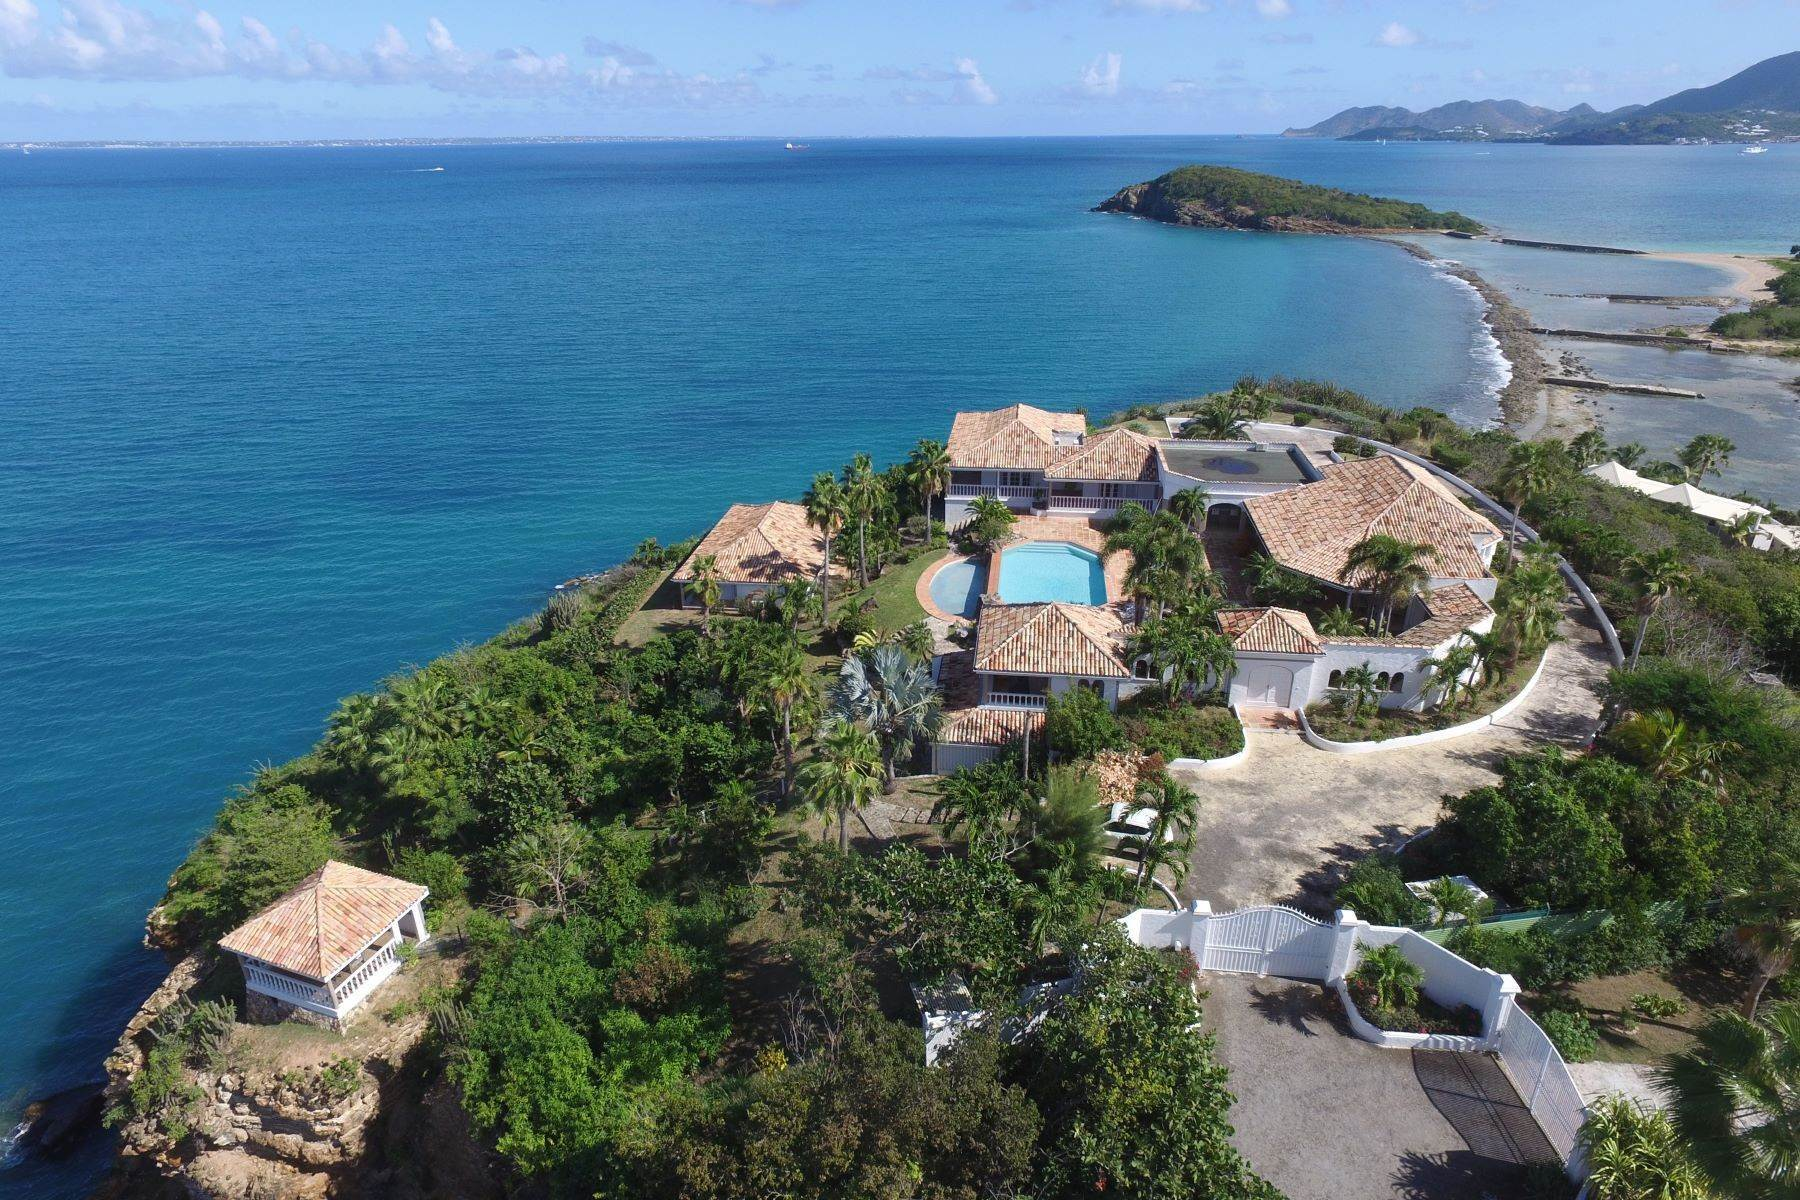 Single Family Homes at Esprit de la Mer Terres Basses, 97150, St. Martin